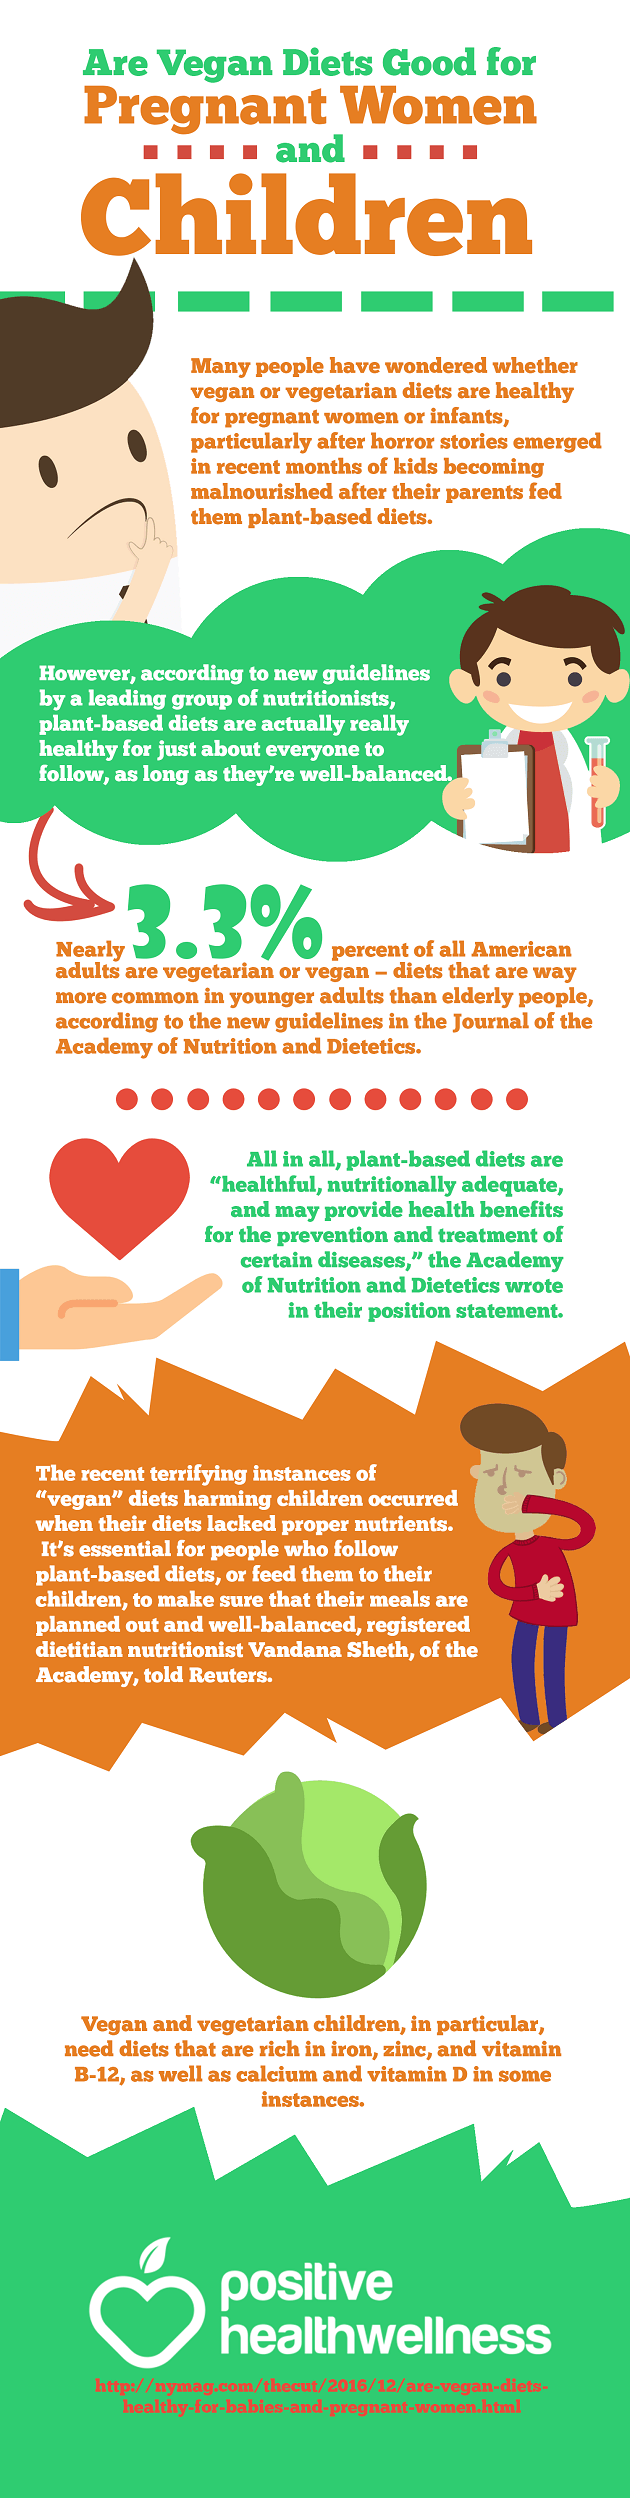 Are Vegan Diets Good For Pregnant Women And Children Infographic